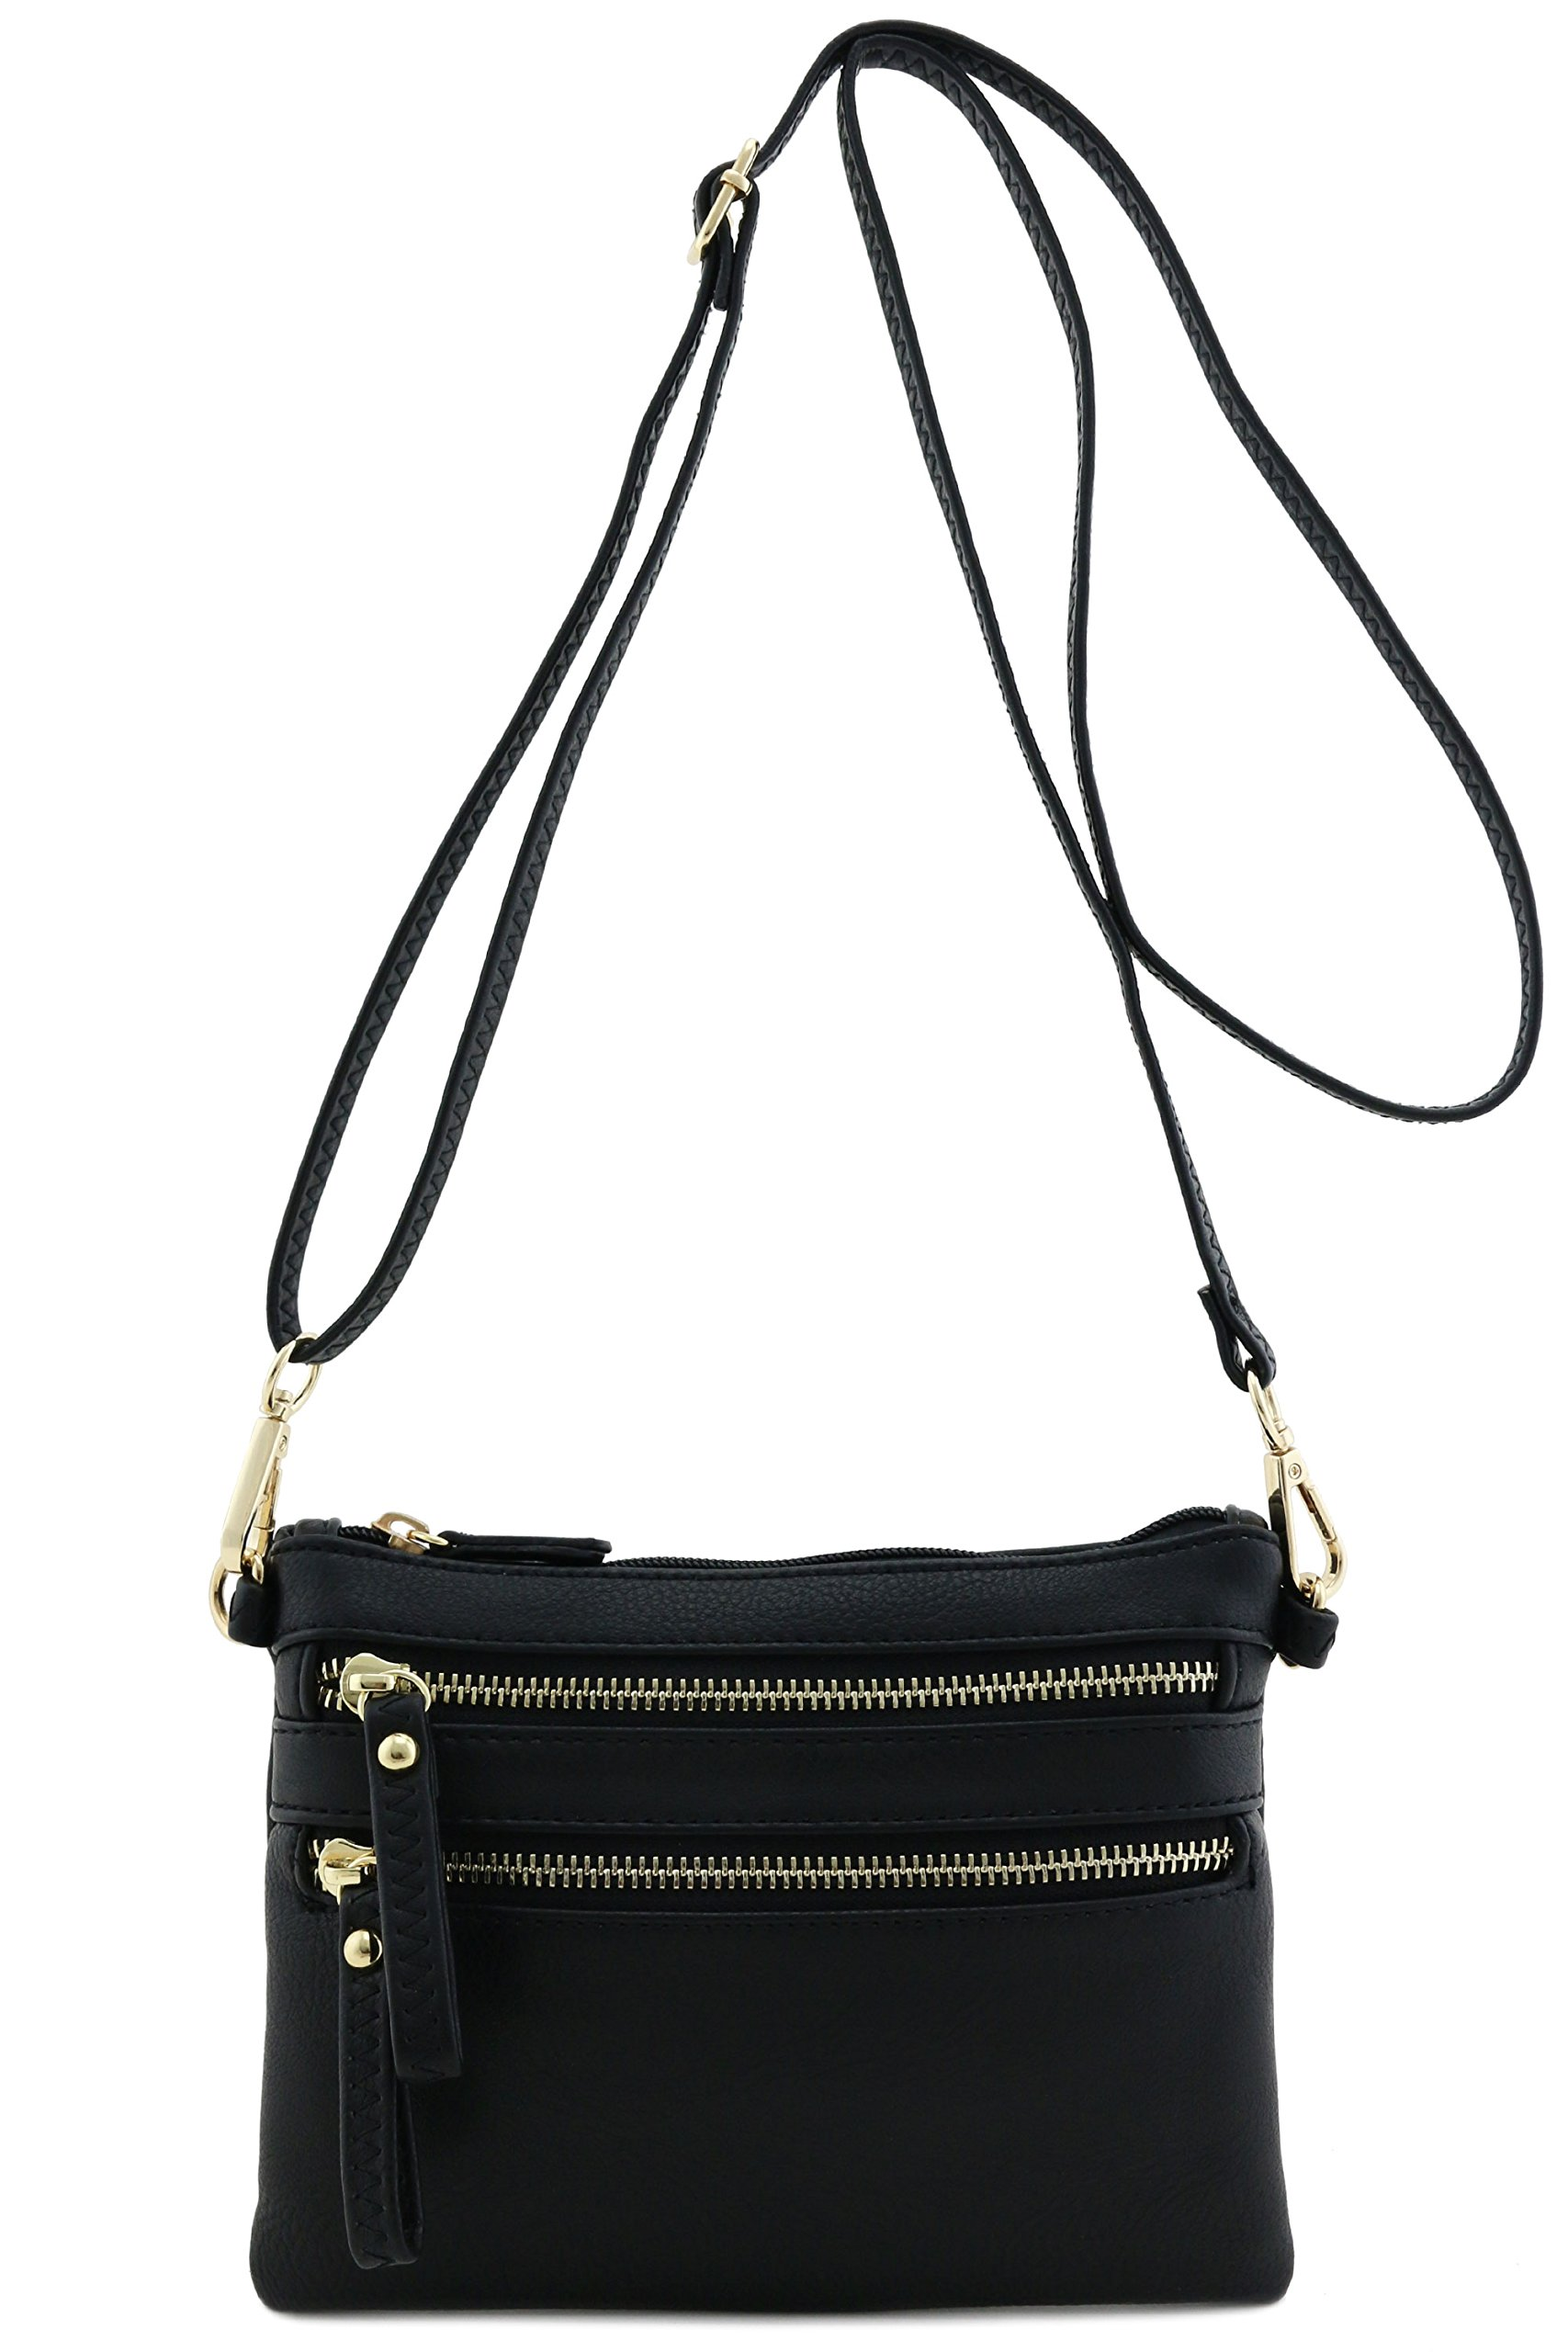 FashionPuzzle Multi Zipper Pocket Small Wristlet Crossbody Bag Black,One Size